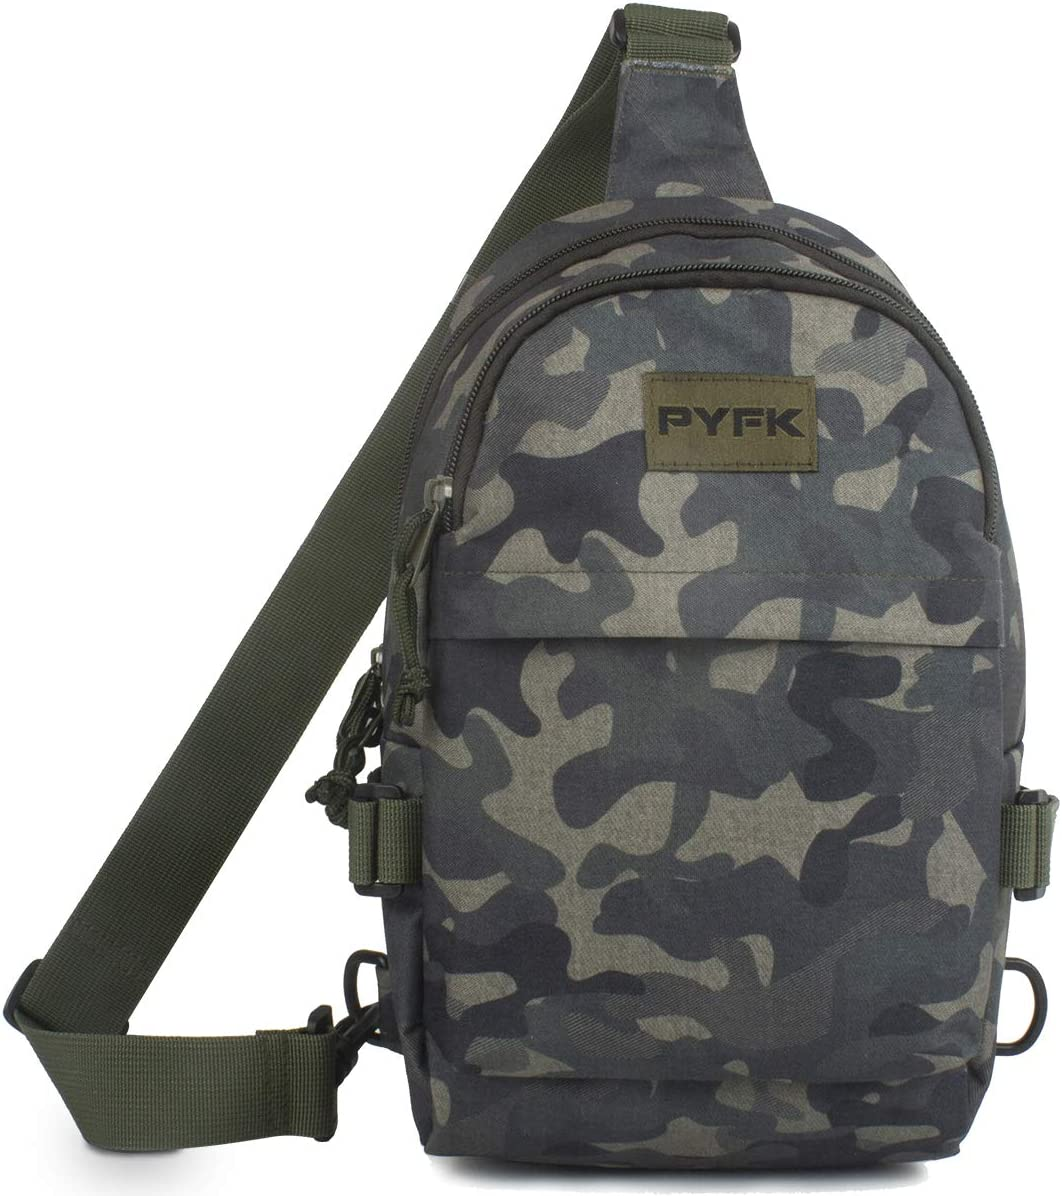 PYFK Camo Sling Backpack for Men Free shipping Crossbody Shoulder Small Sale